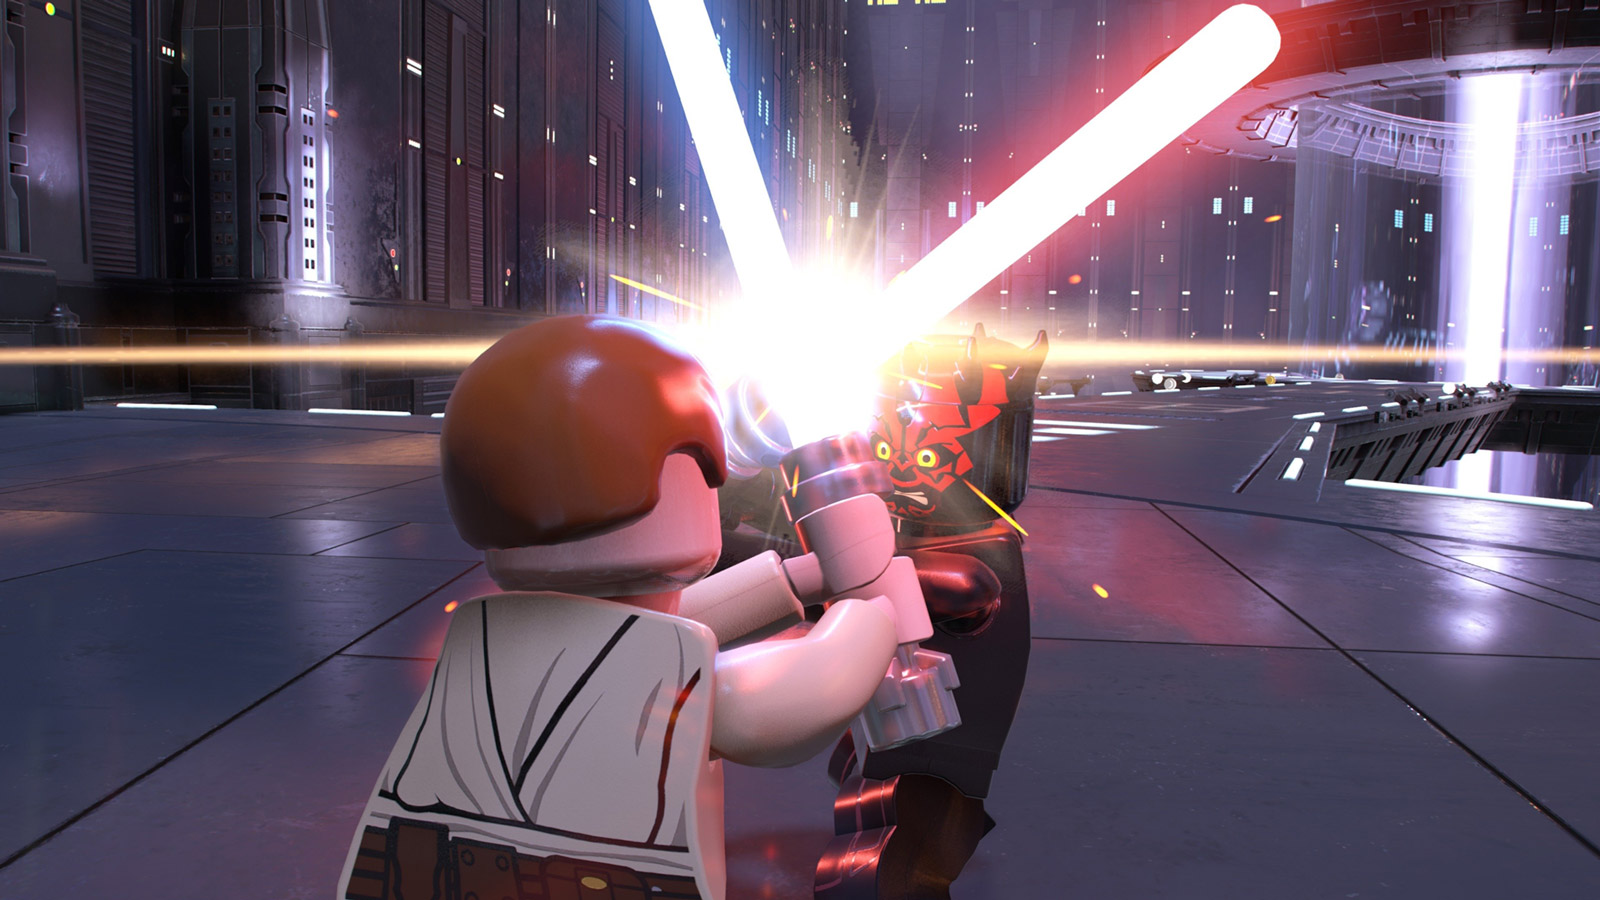 Free Lego Star Wars: The Skywalker Saga Wallpaper in 1600x900